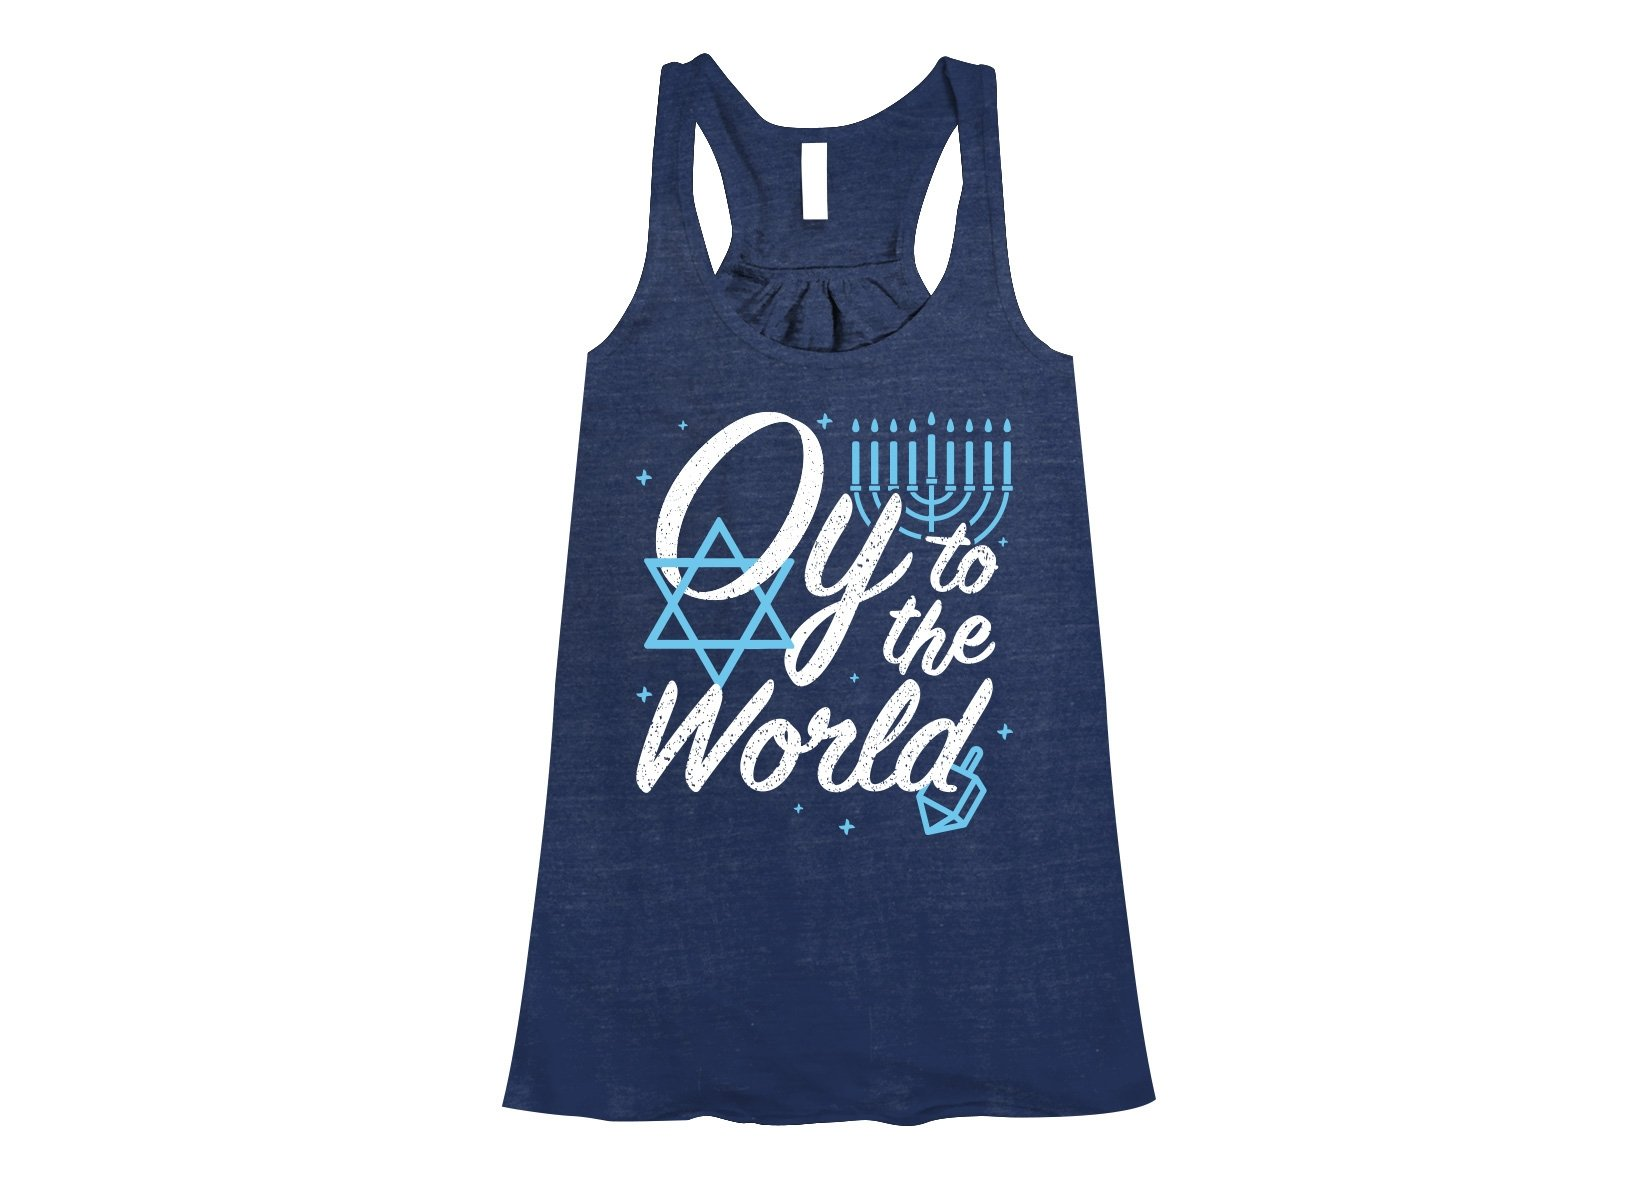 Oy To The World on Womens Tanks T-Shirt